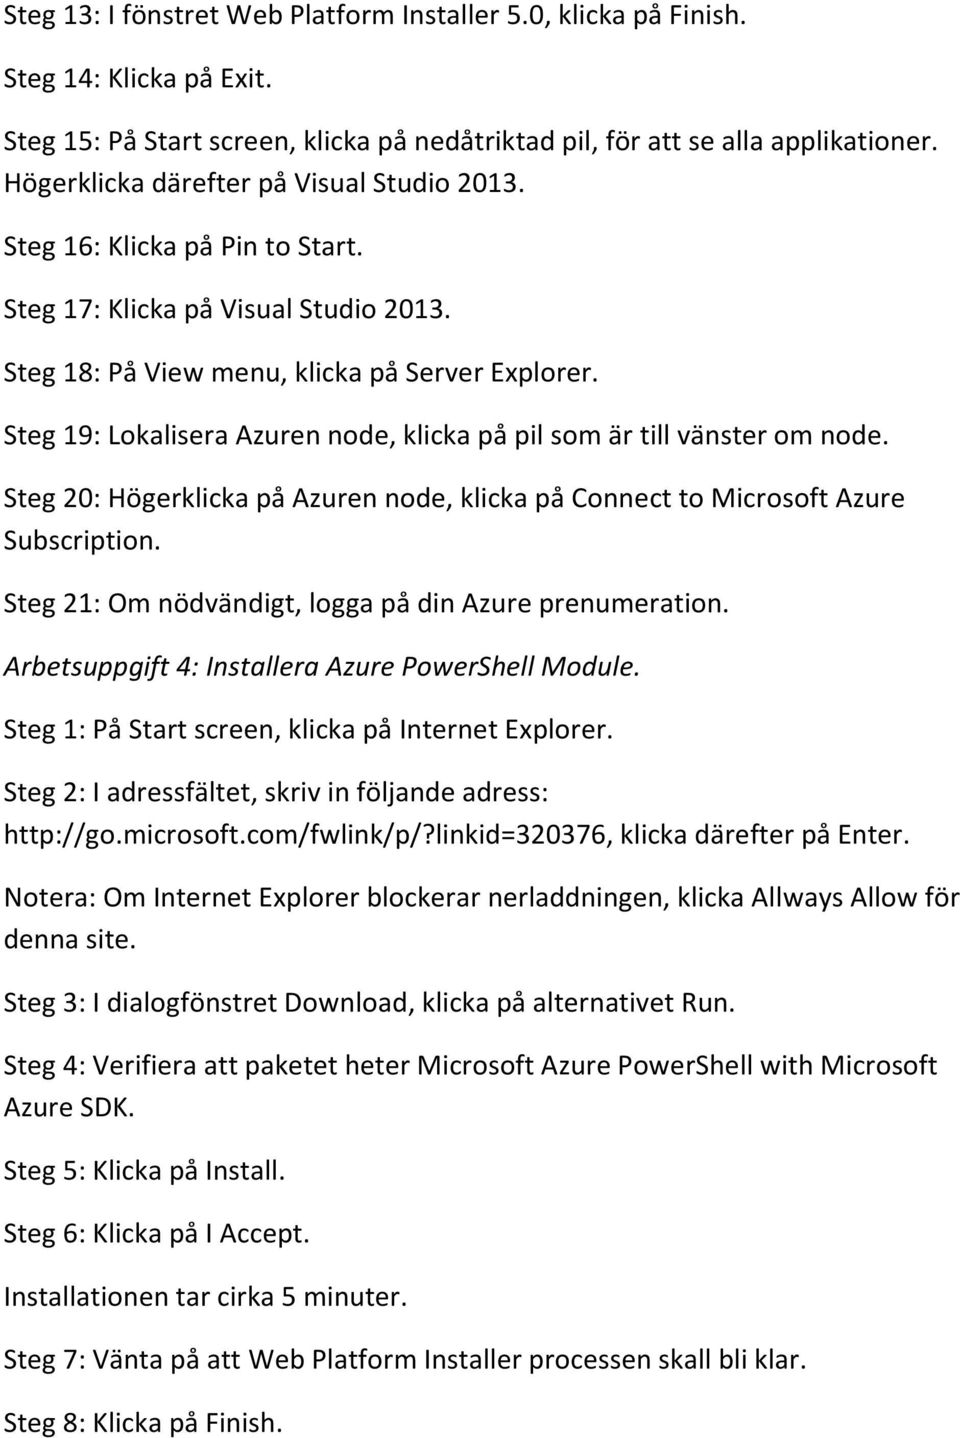 Steg 19: Lokalisera Azuren node, klicka på pil som är till vänster om node. Steg 20: Högerklicka på Azuren node, klicka på Connect to Microsoft Azure Subscription.